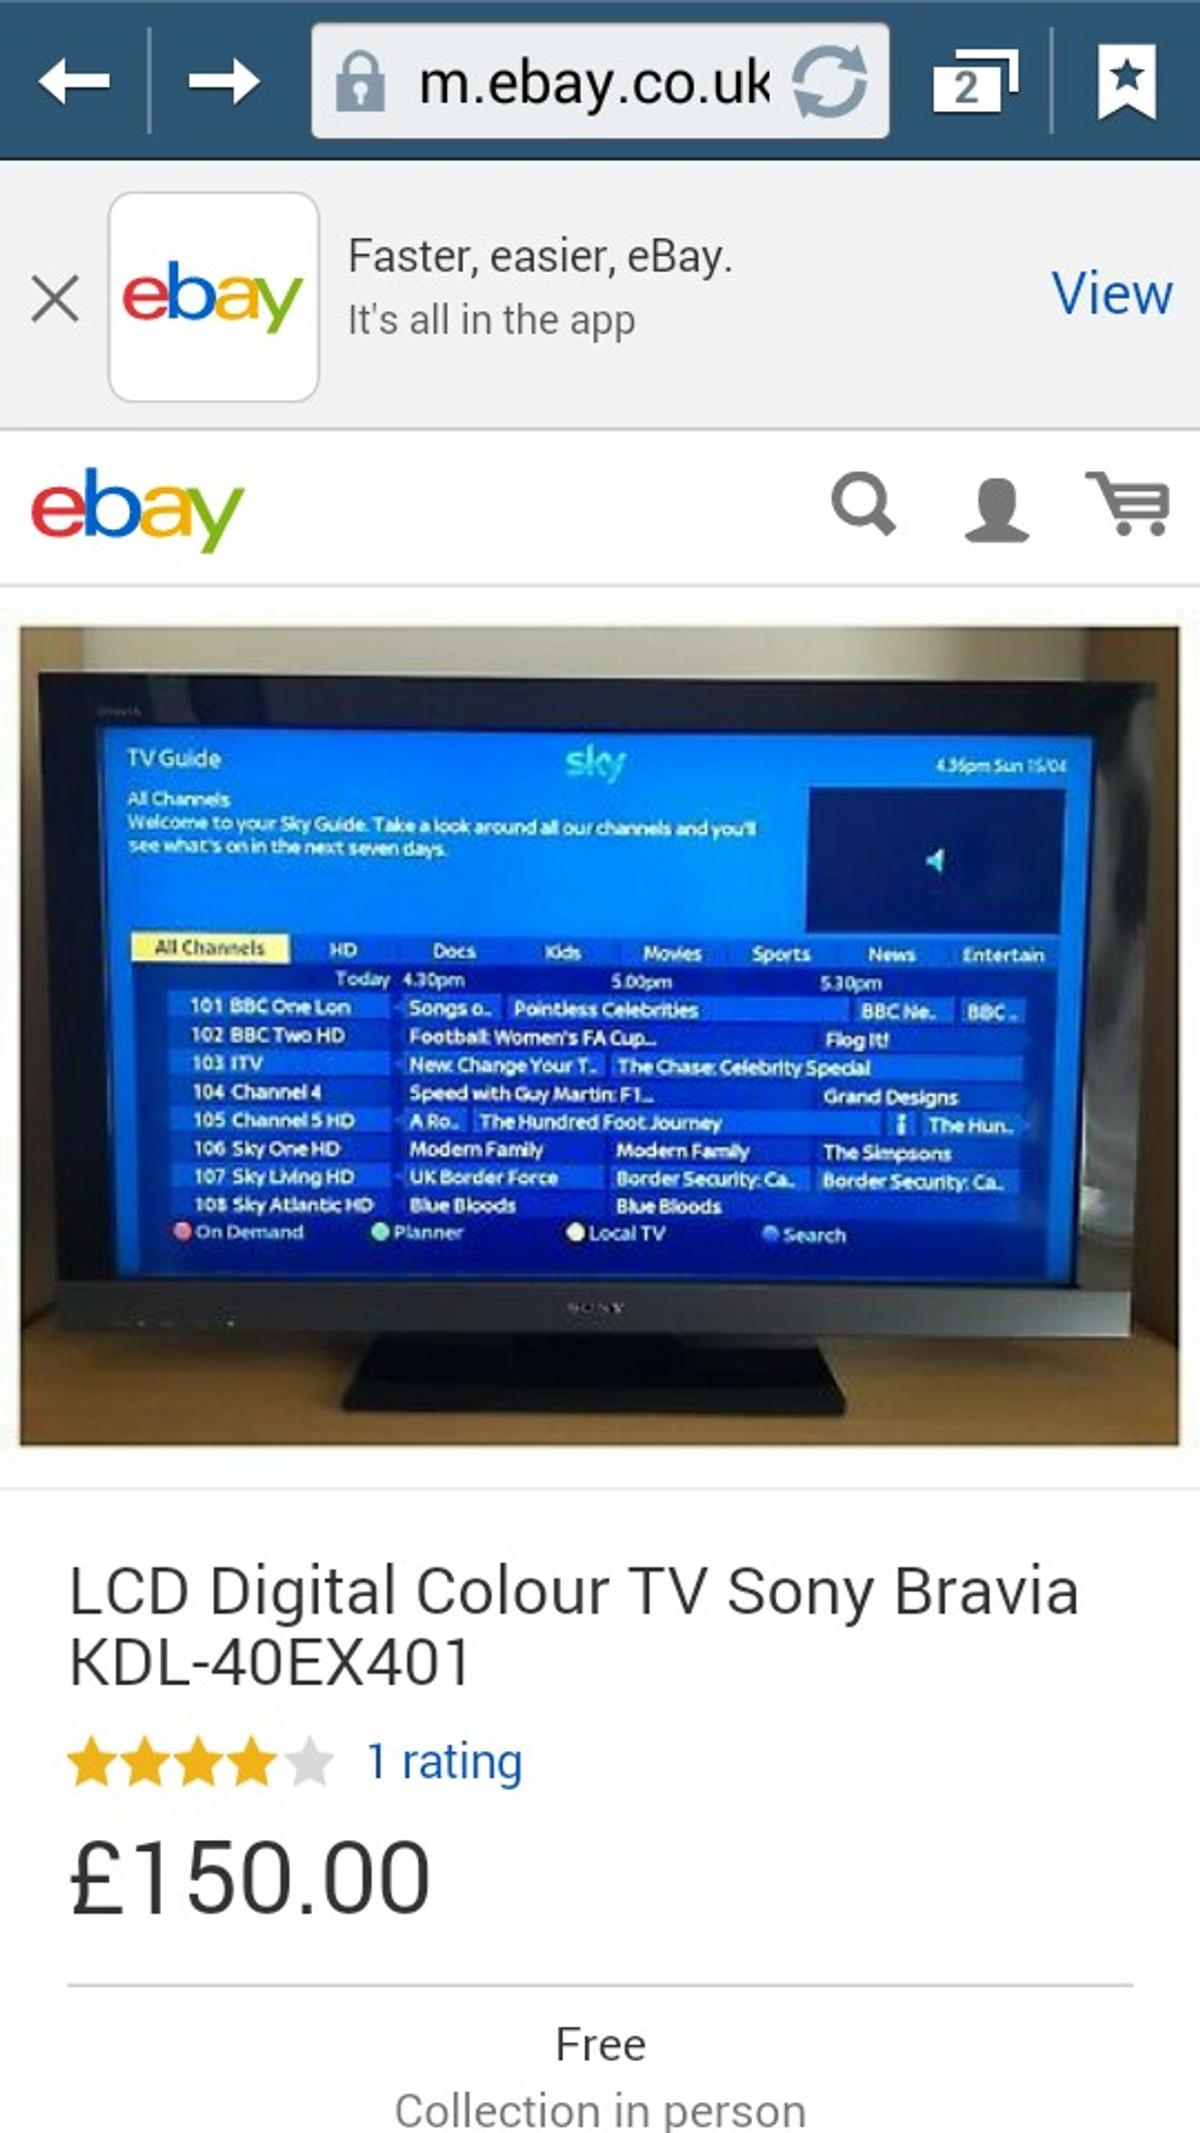 LCD Digital Colour TV Sony Bravia KDL-40EX40